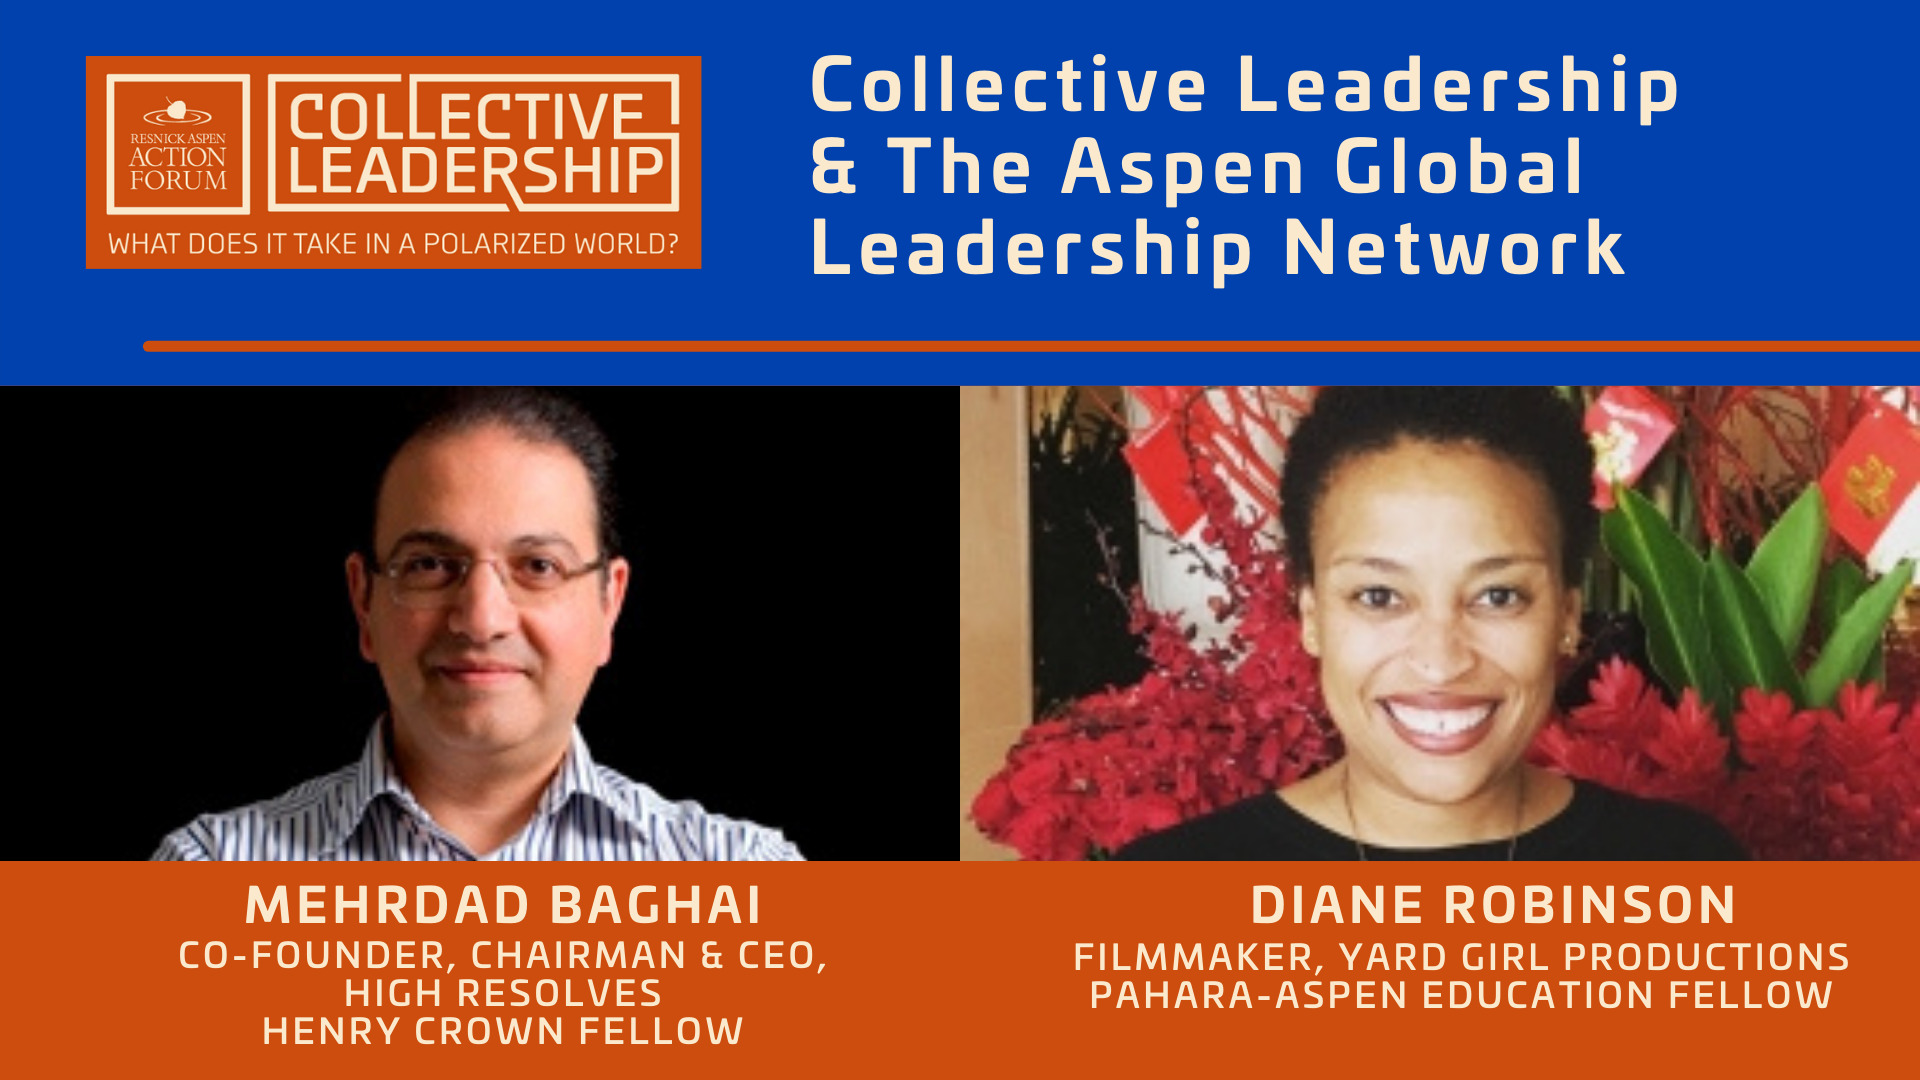 Collective Leadership and the Aspen Global Leadership Network